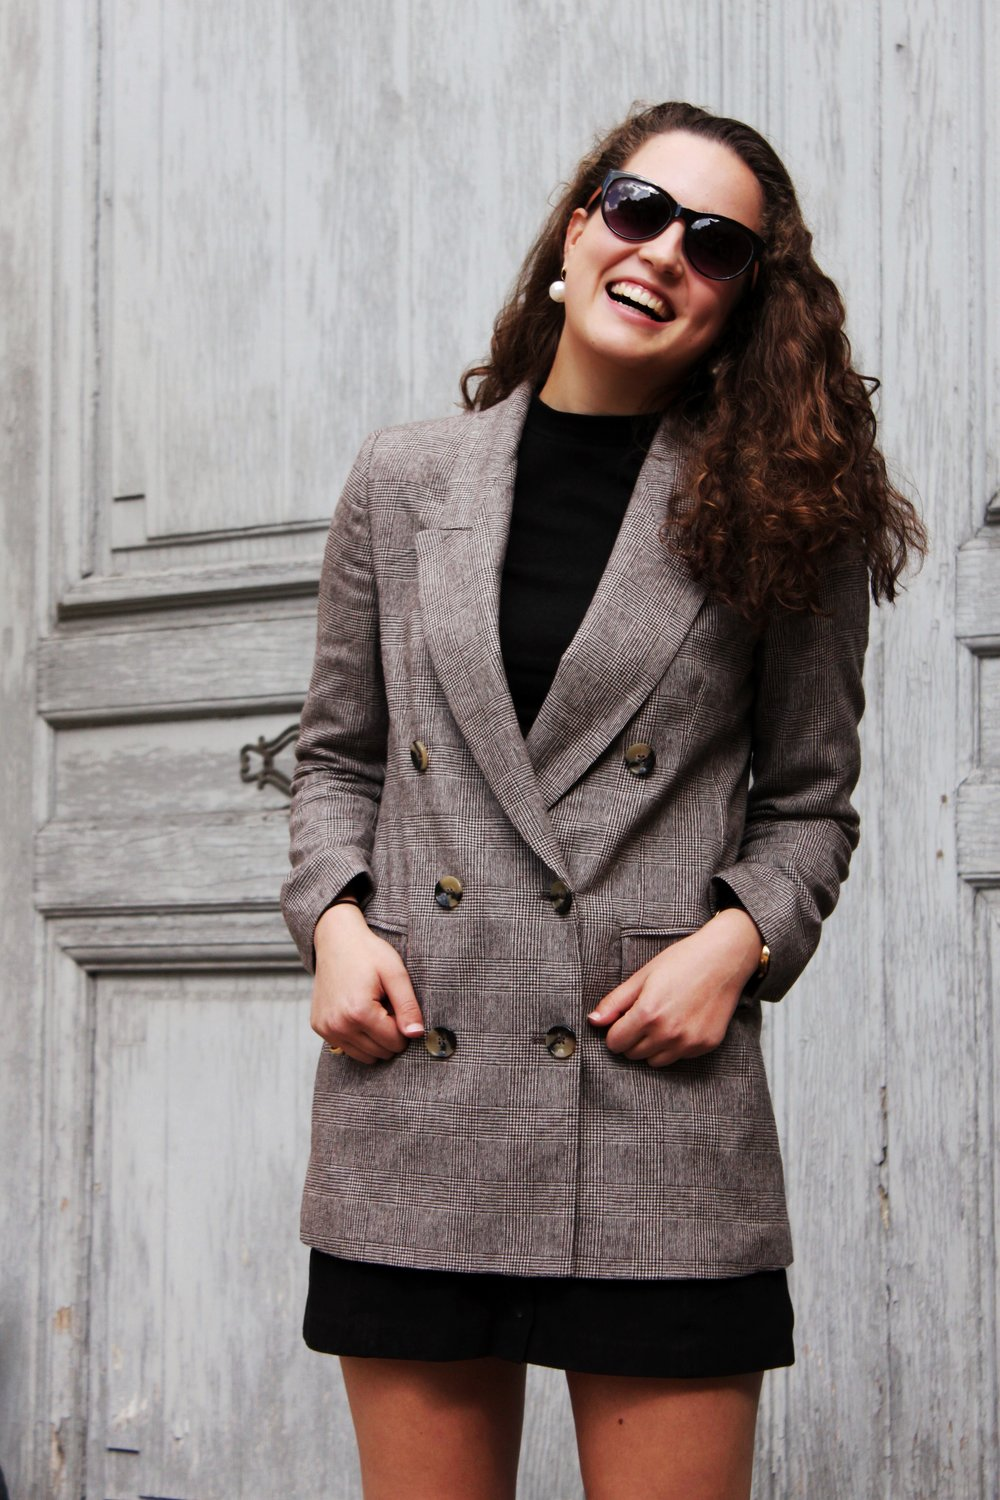 Menswear Inspired Cady Quotidienne Laugh 2.jpg